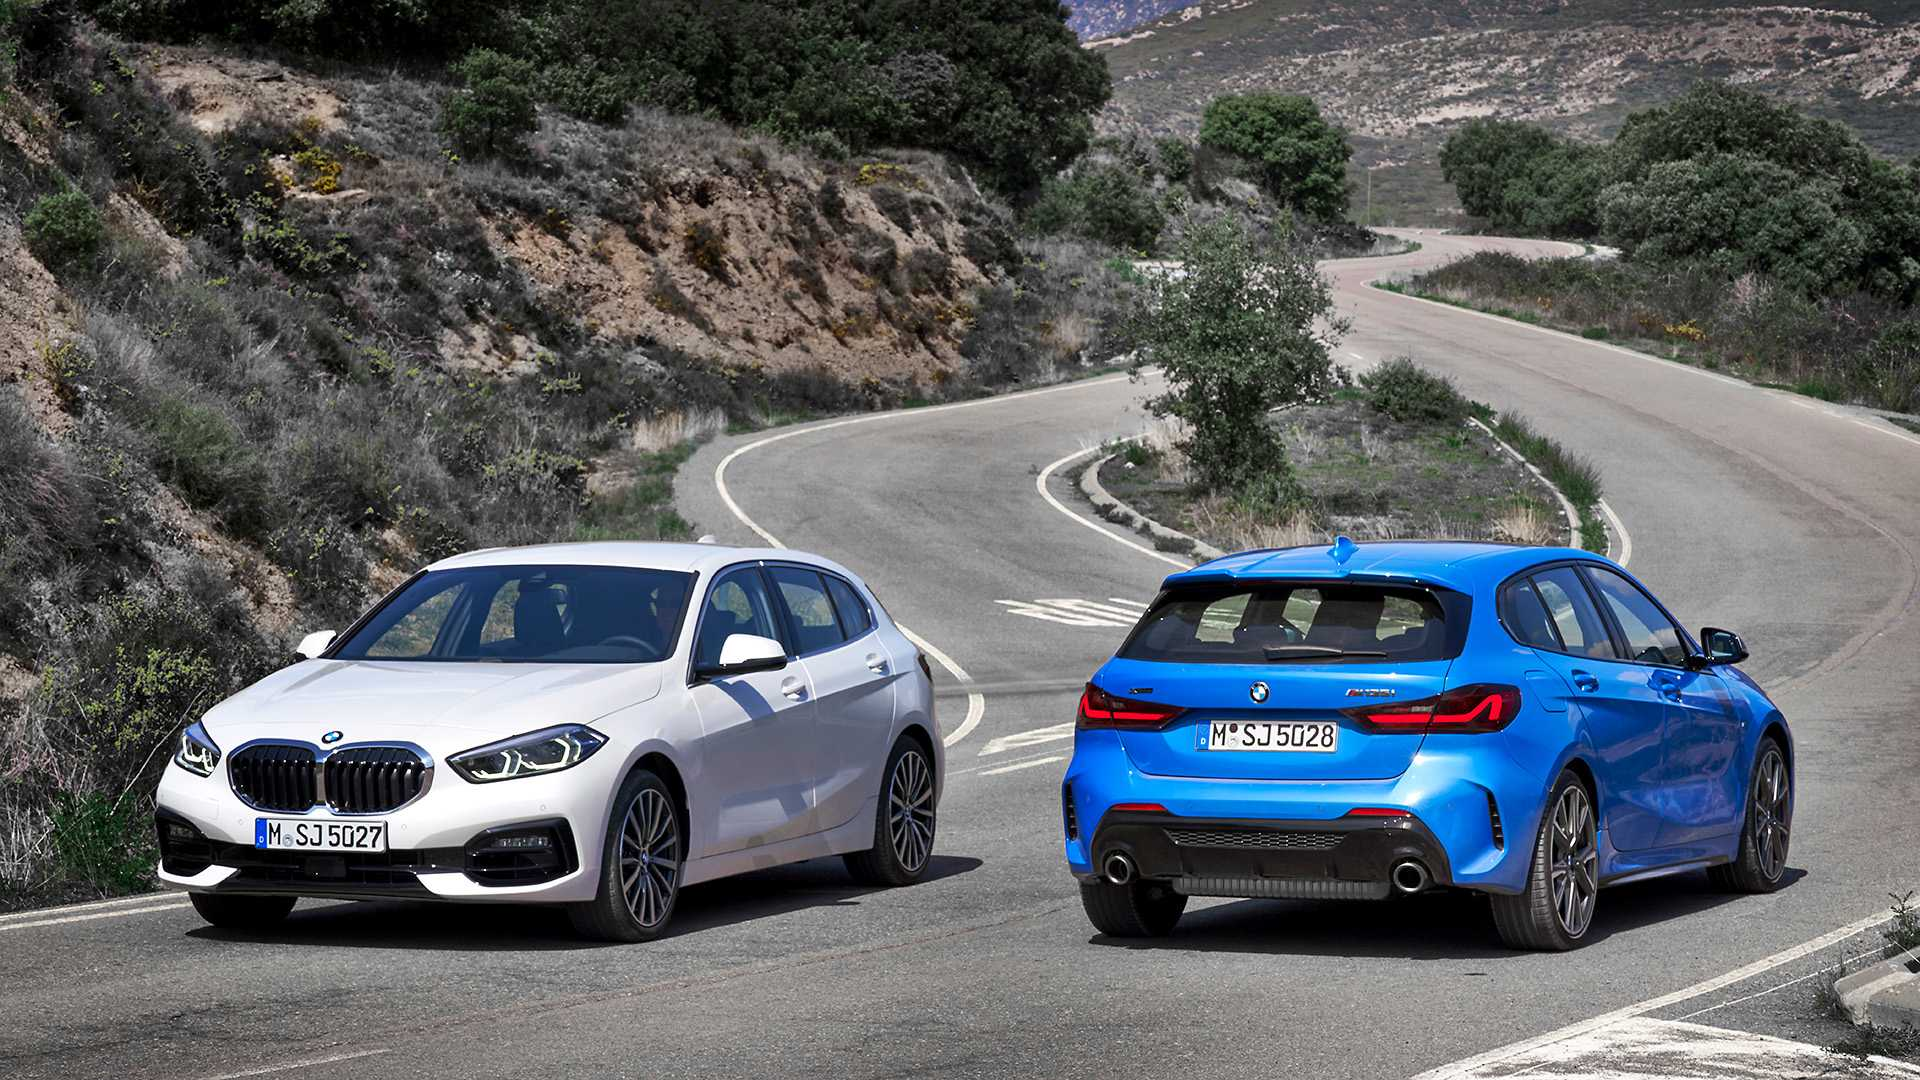 2015 Bmw 1 Series Facelift Tested The Joys Of Rear Wheel